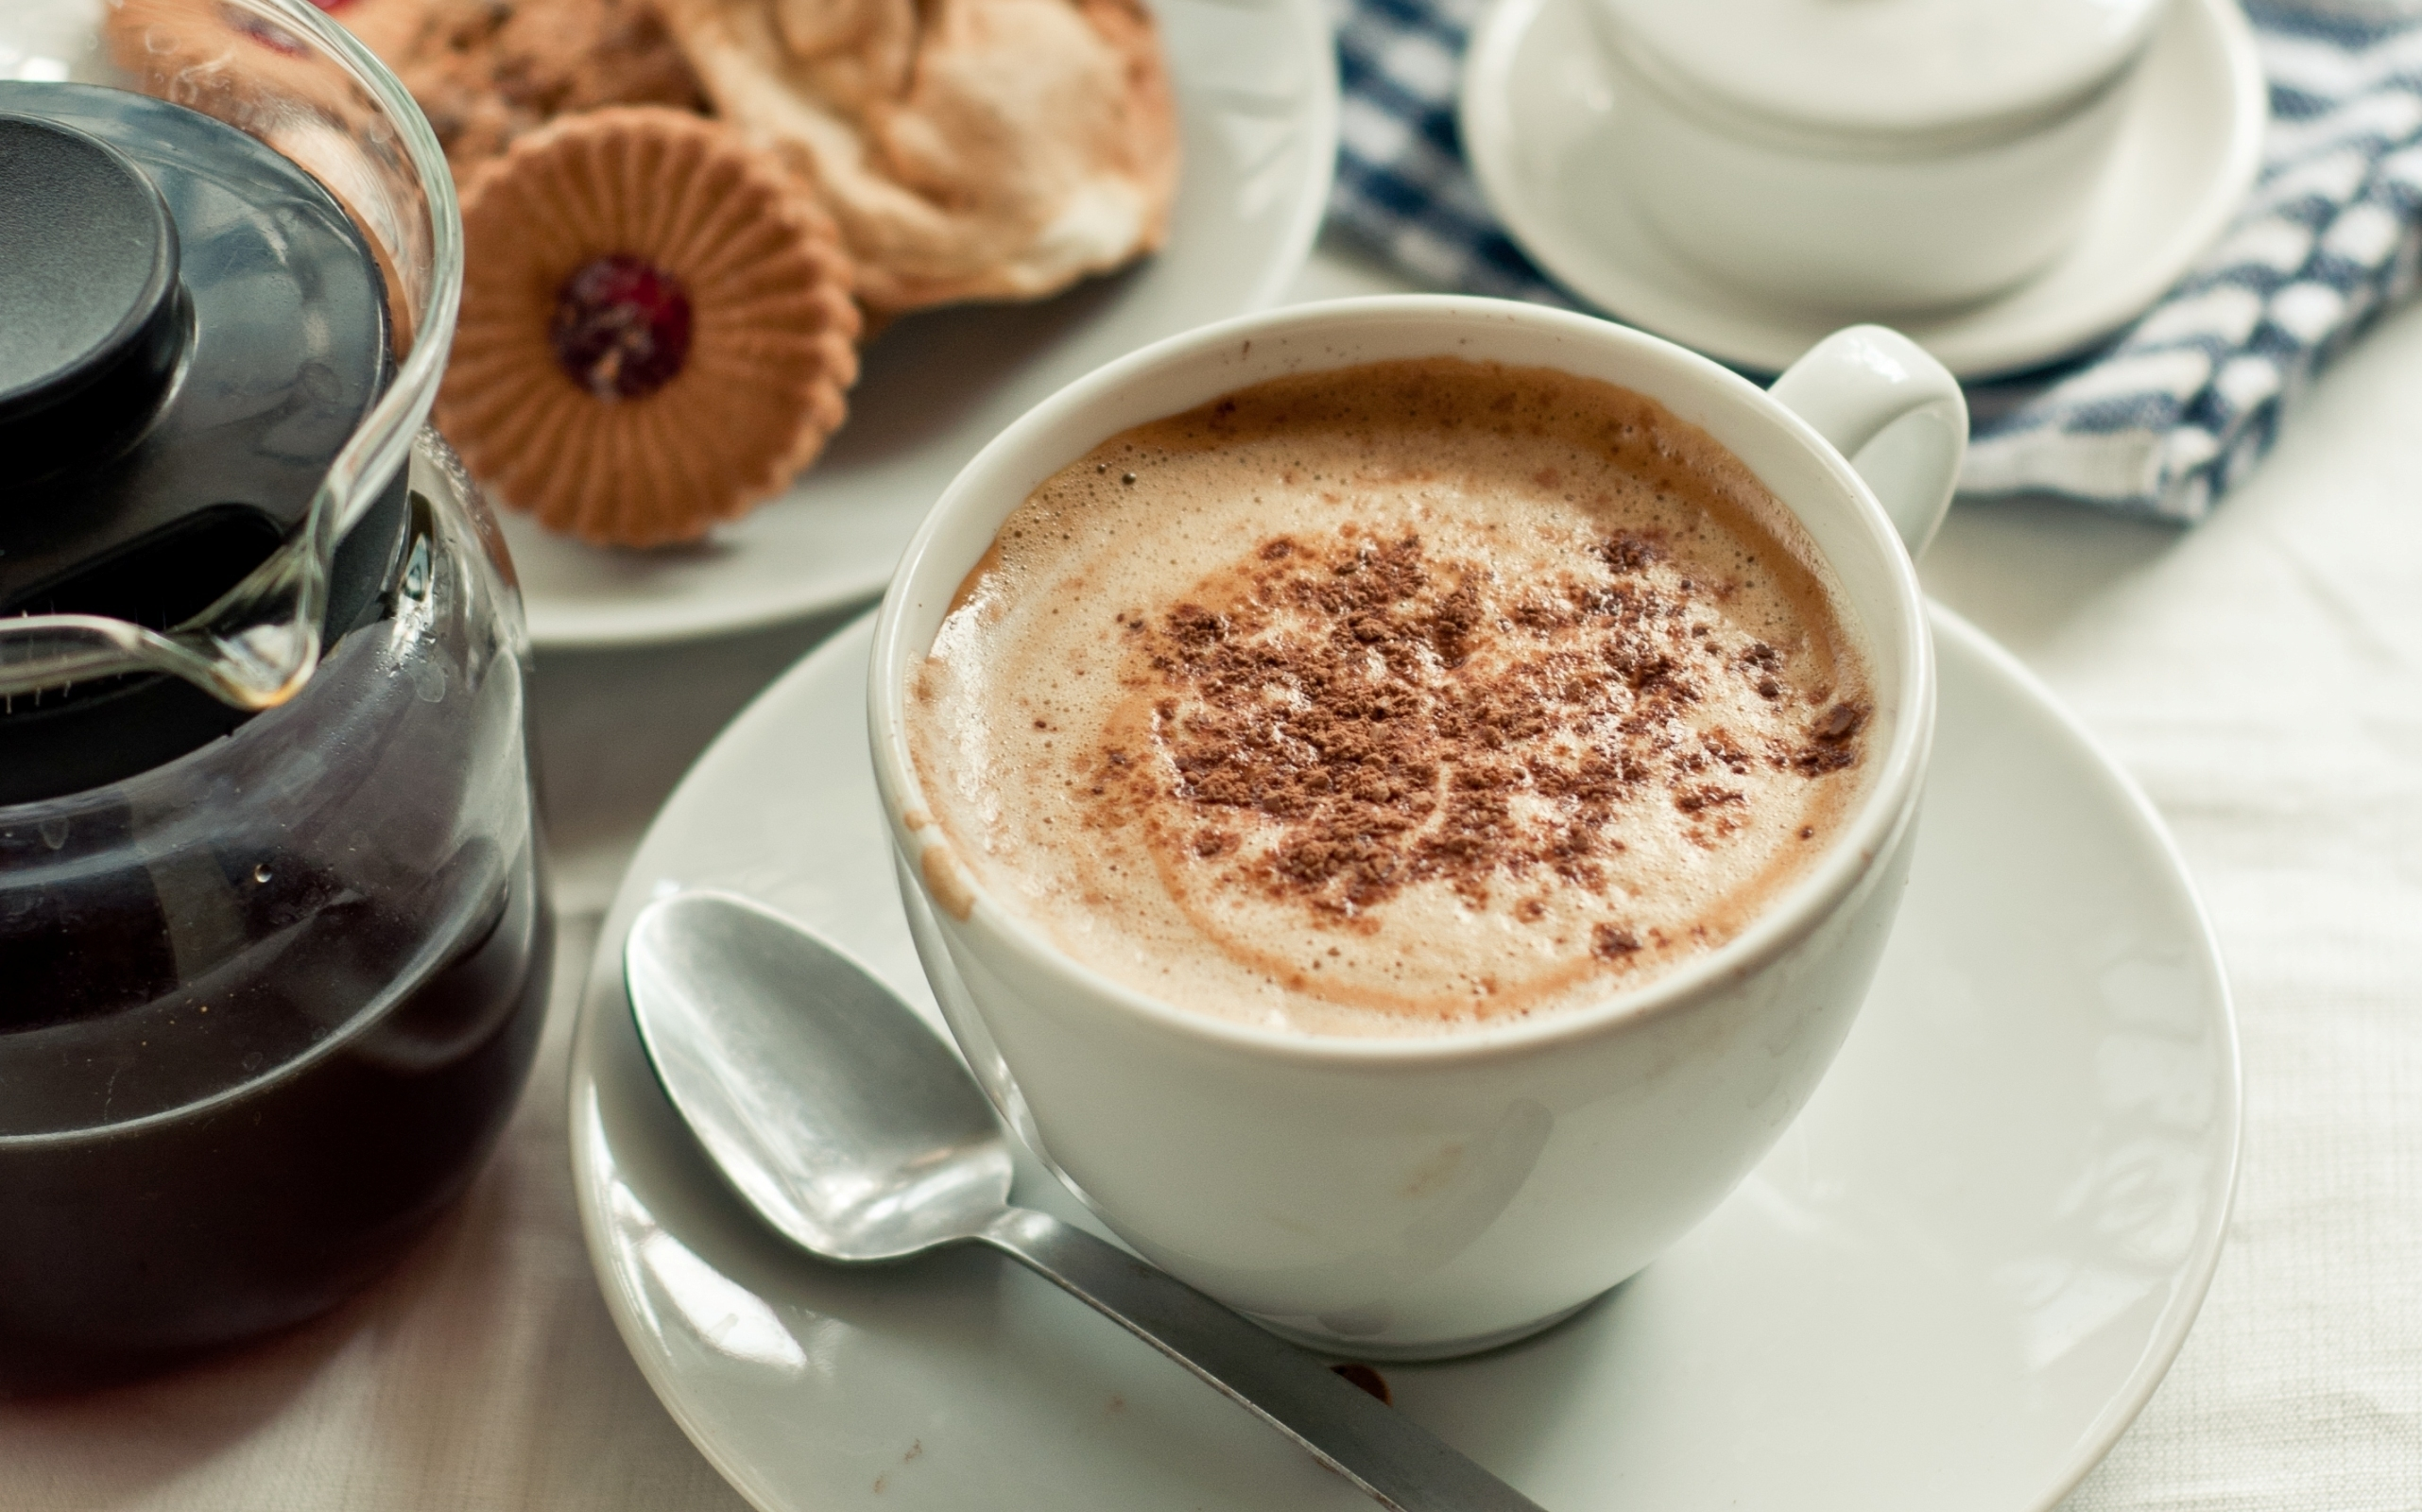 139066 download wallpaper Food, Cup, Coffee, Foam, Meerschaum, Cookies, Morning, Cinnamon screensavers and pictures for free